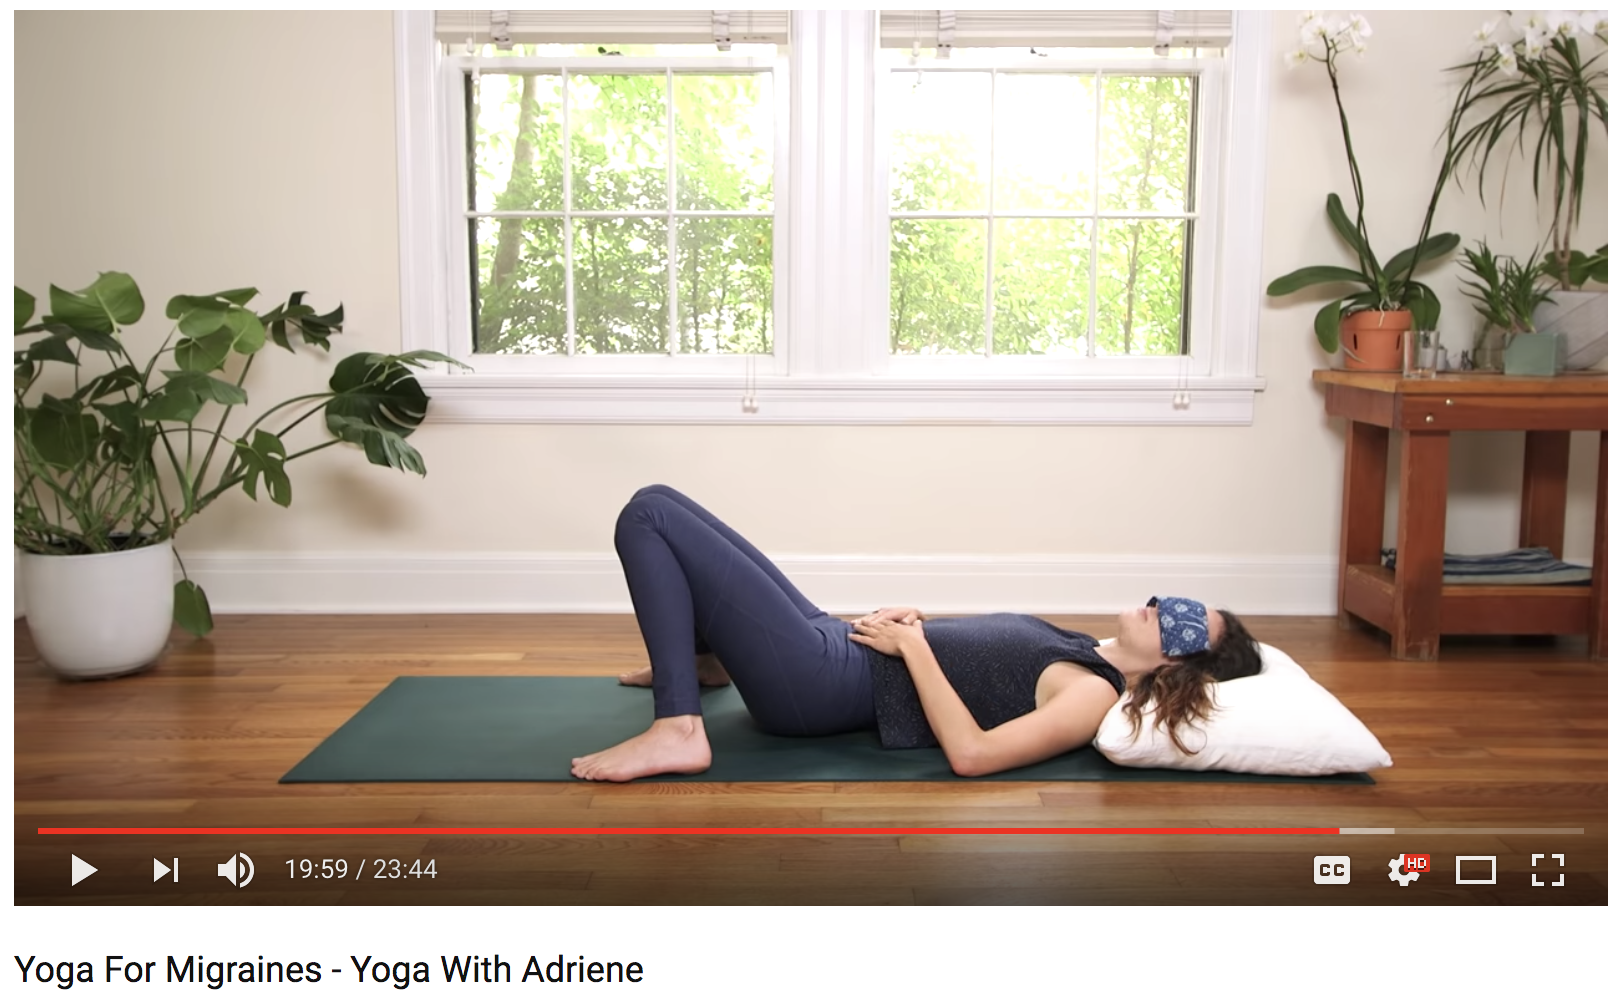 Yoga For Migraines with Adriene (23 min)